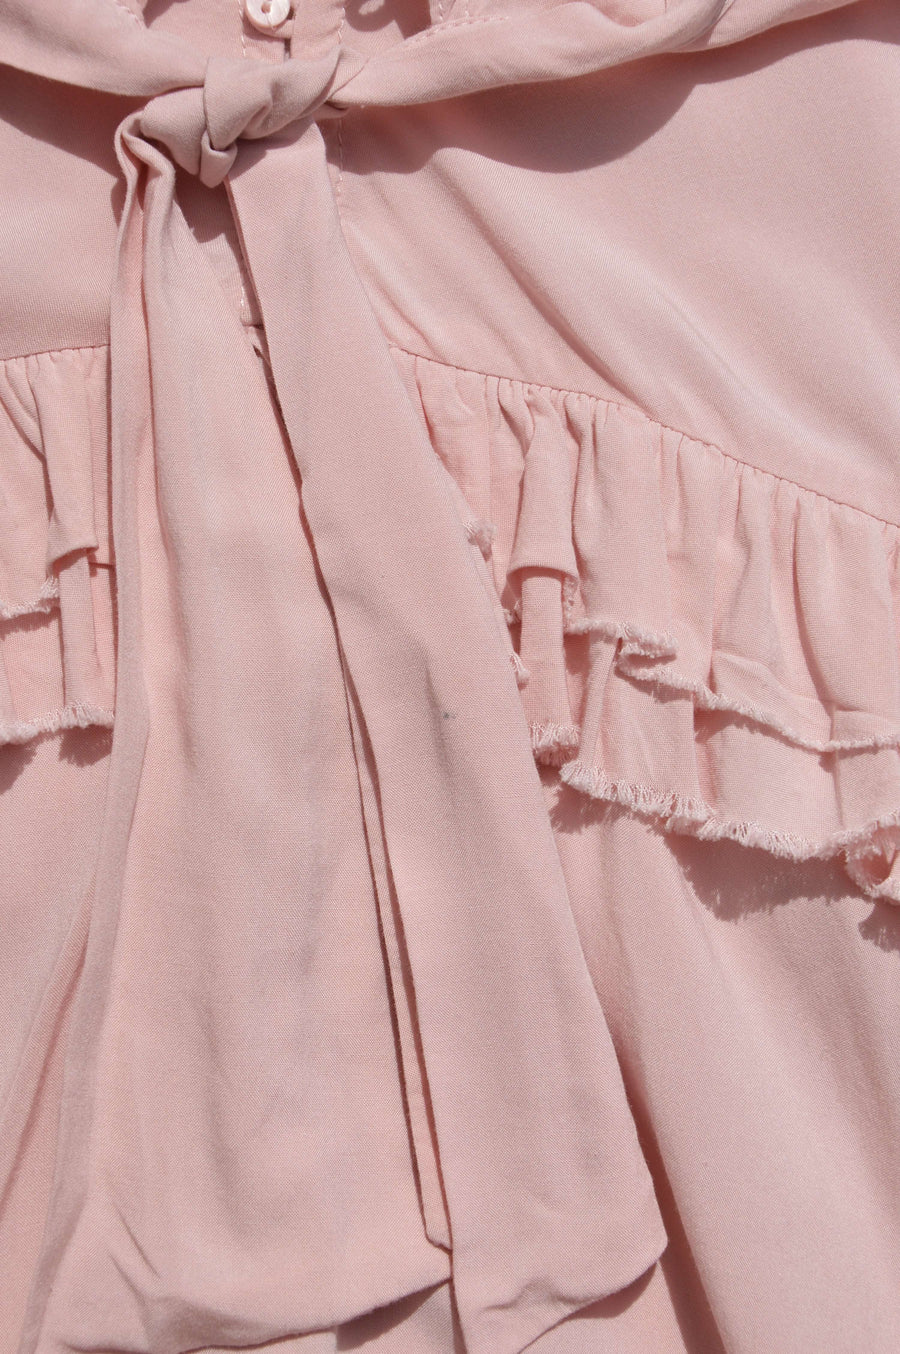 Witchery - nearly new - blush pink shirt, size 5